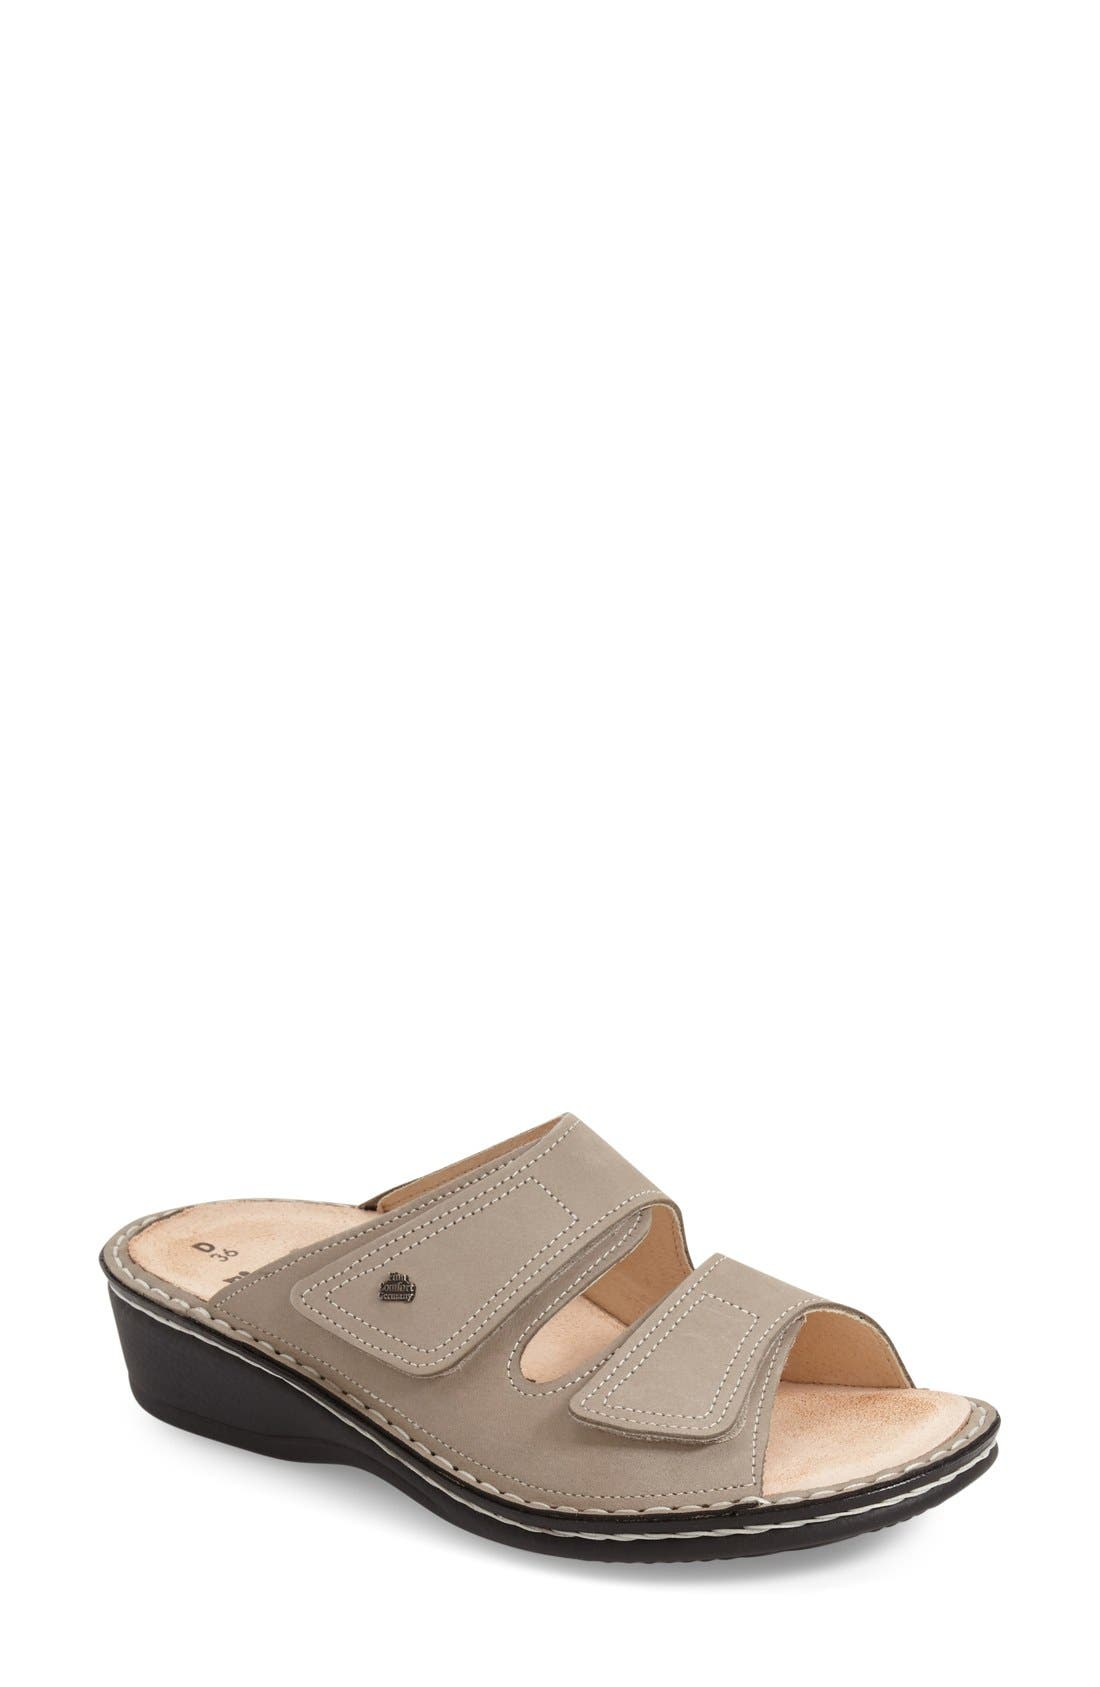 Finn 'Jamaica' Sandal,                         Main,                         color, 050